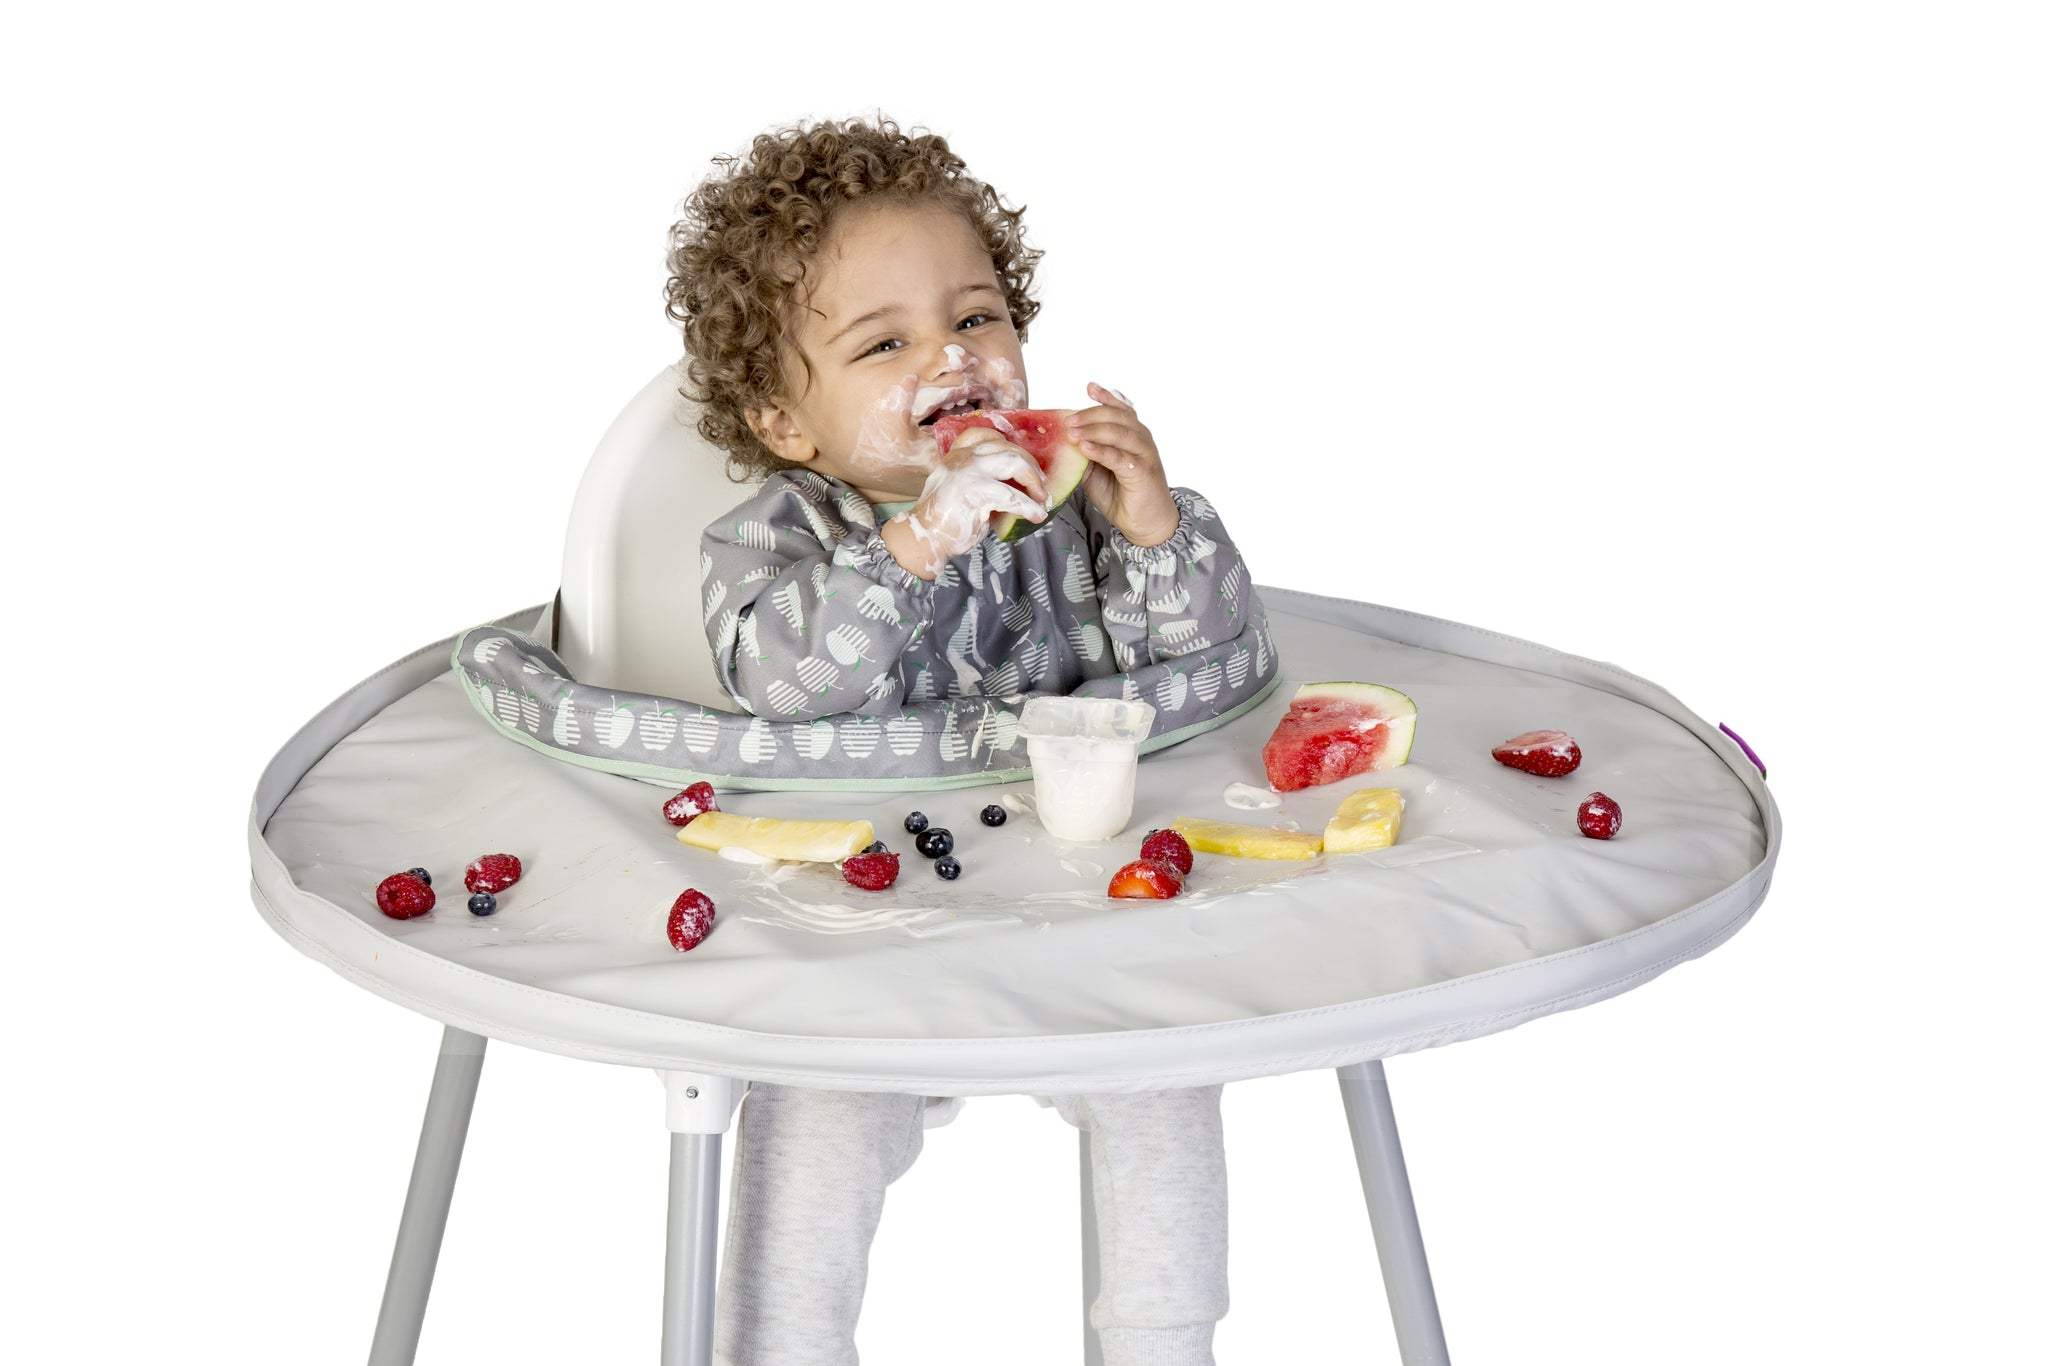 Ast Co Astandco Australian Stockist Tidy Tot Bib And Tray Set